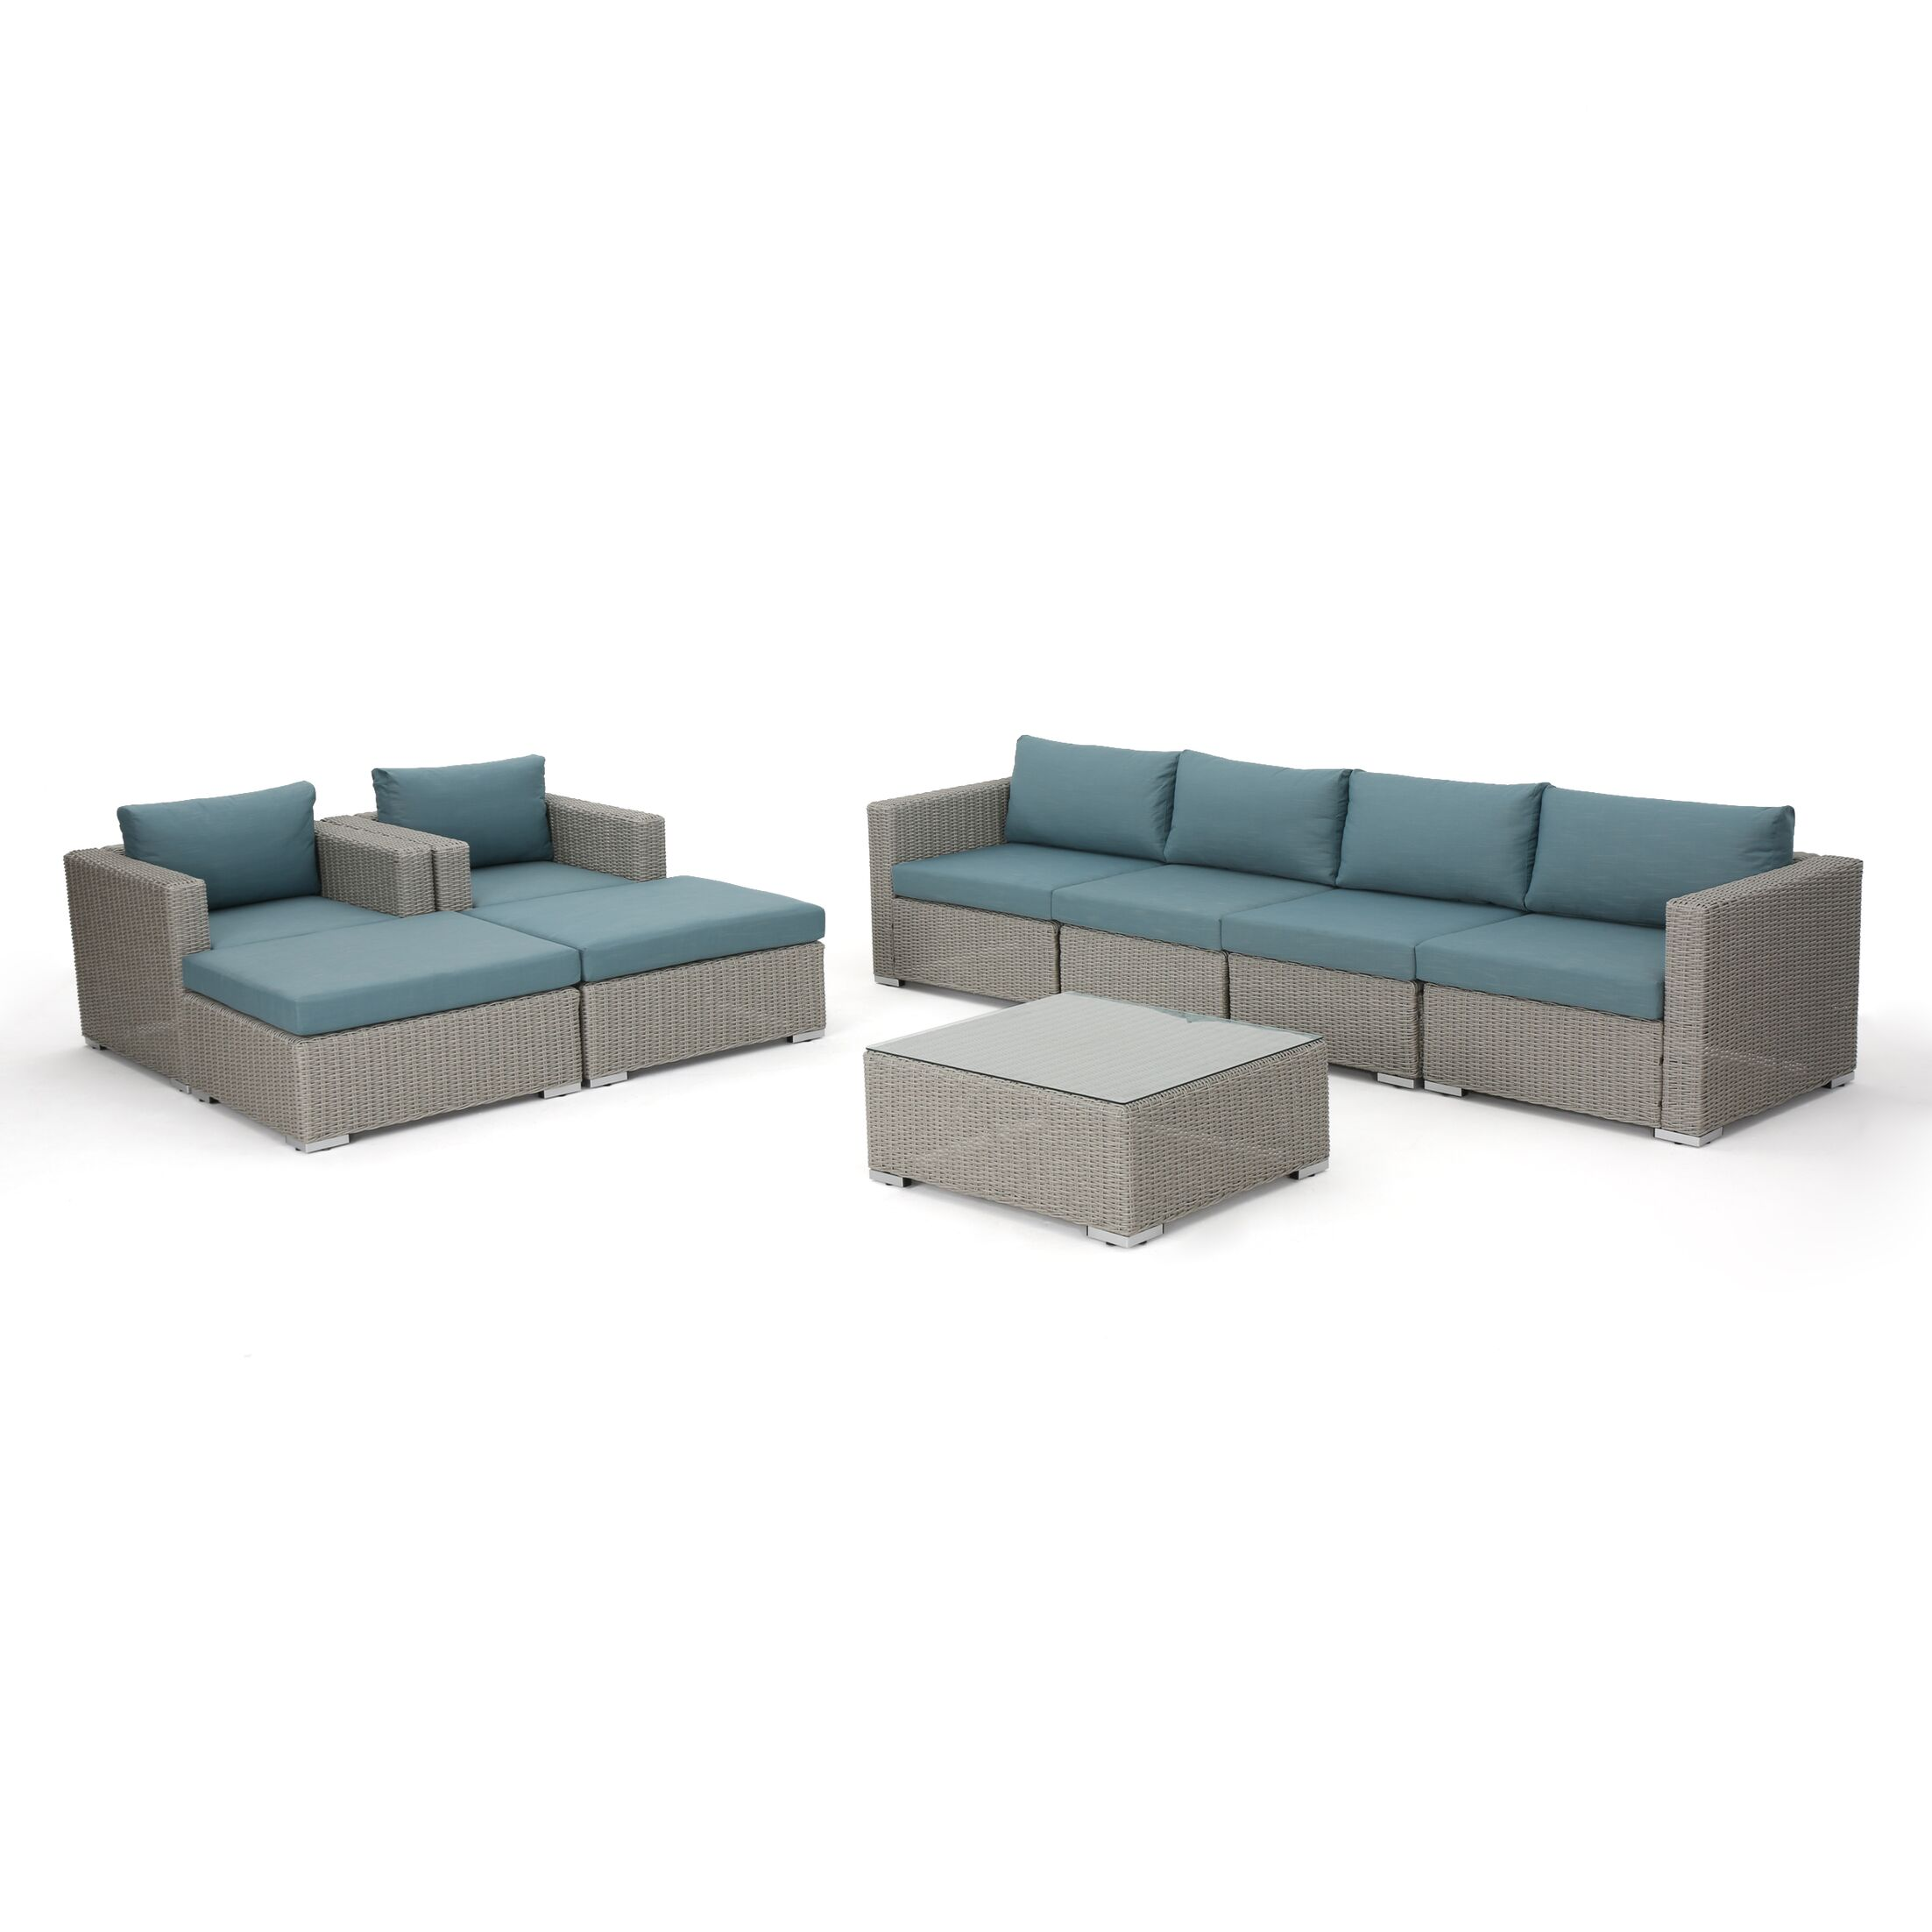 Cullum 9 Piece Sectional Set with Cushions Cushion Color: Teal